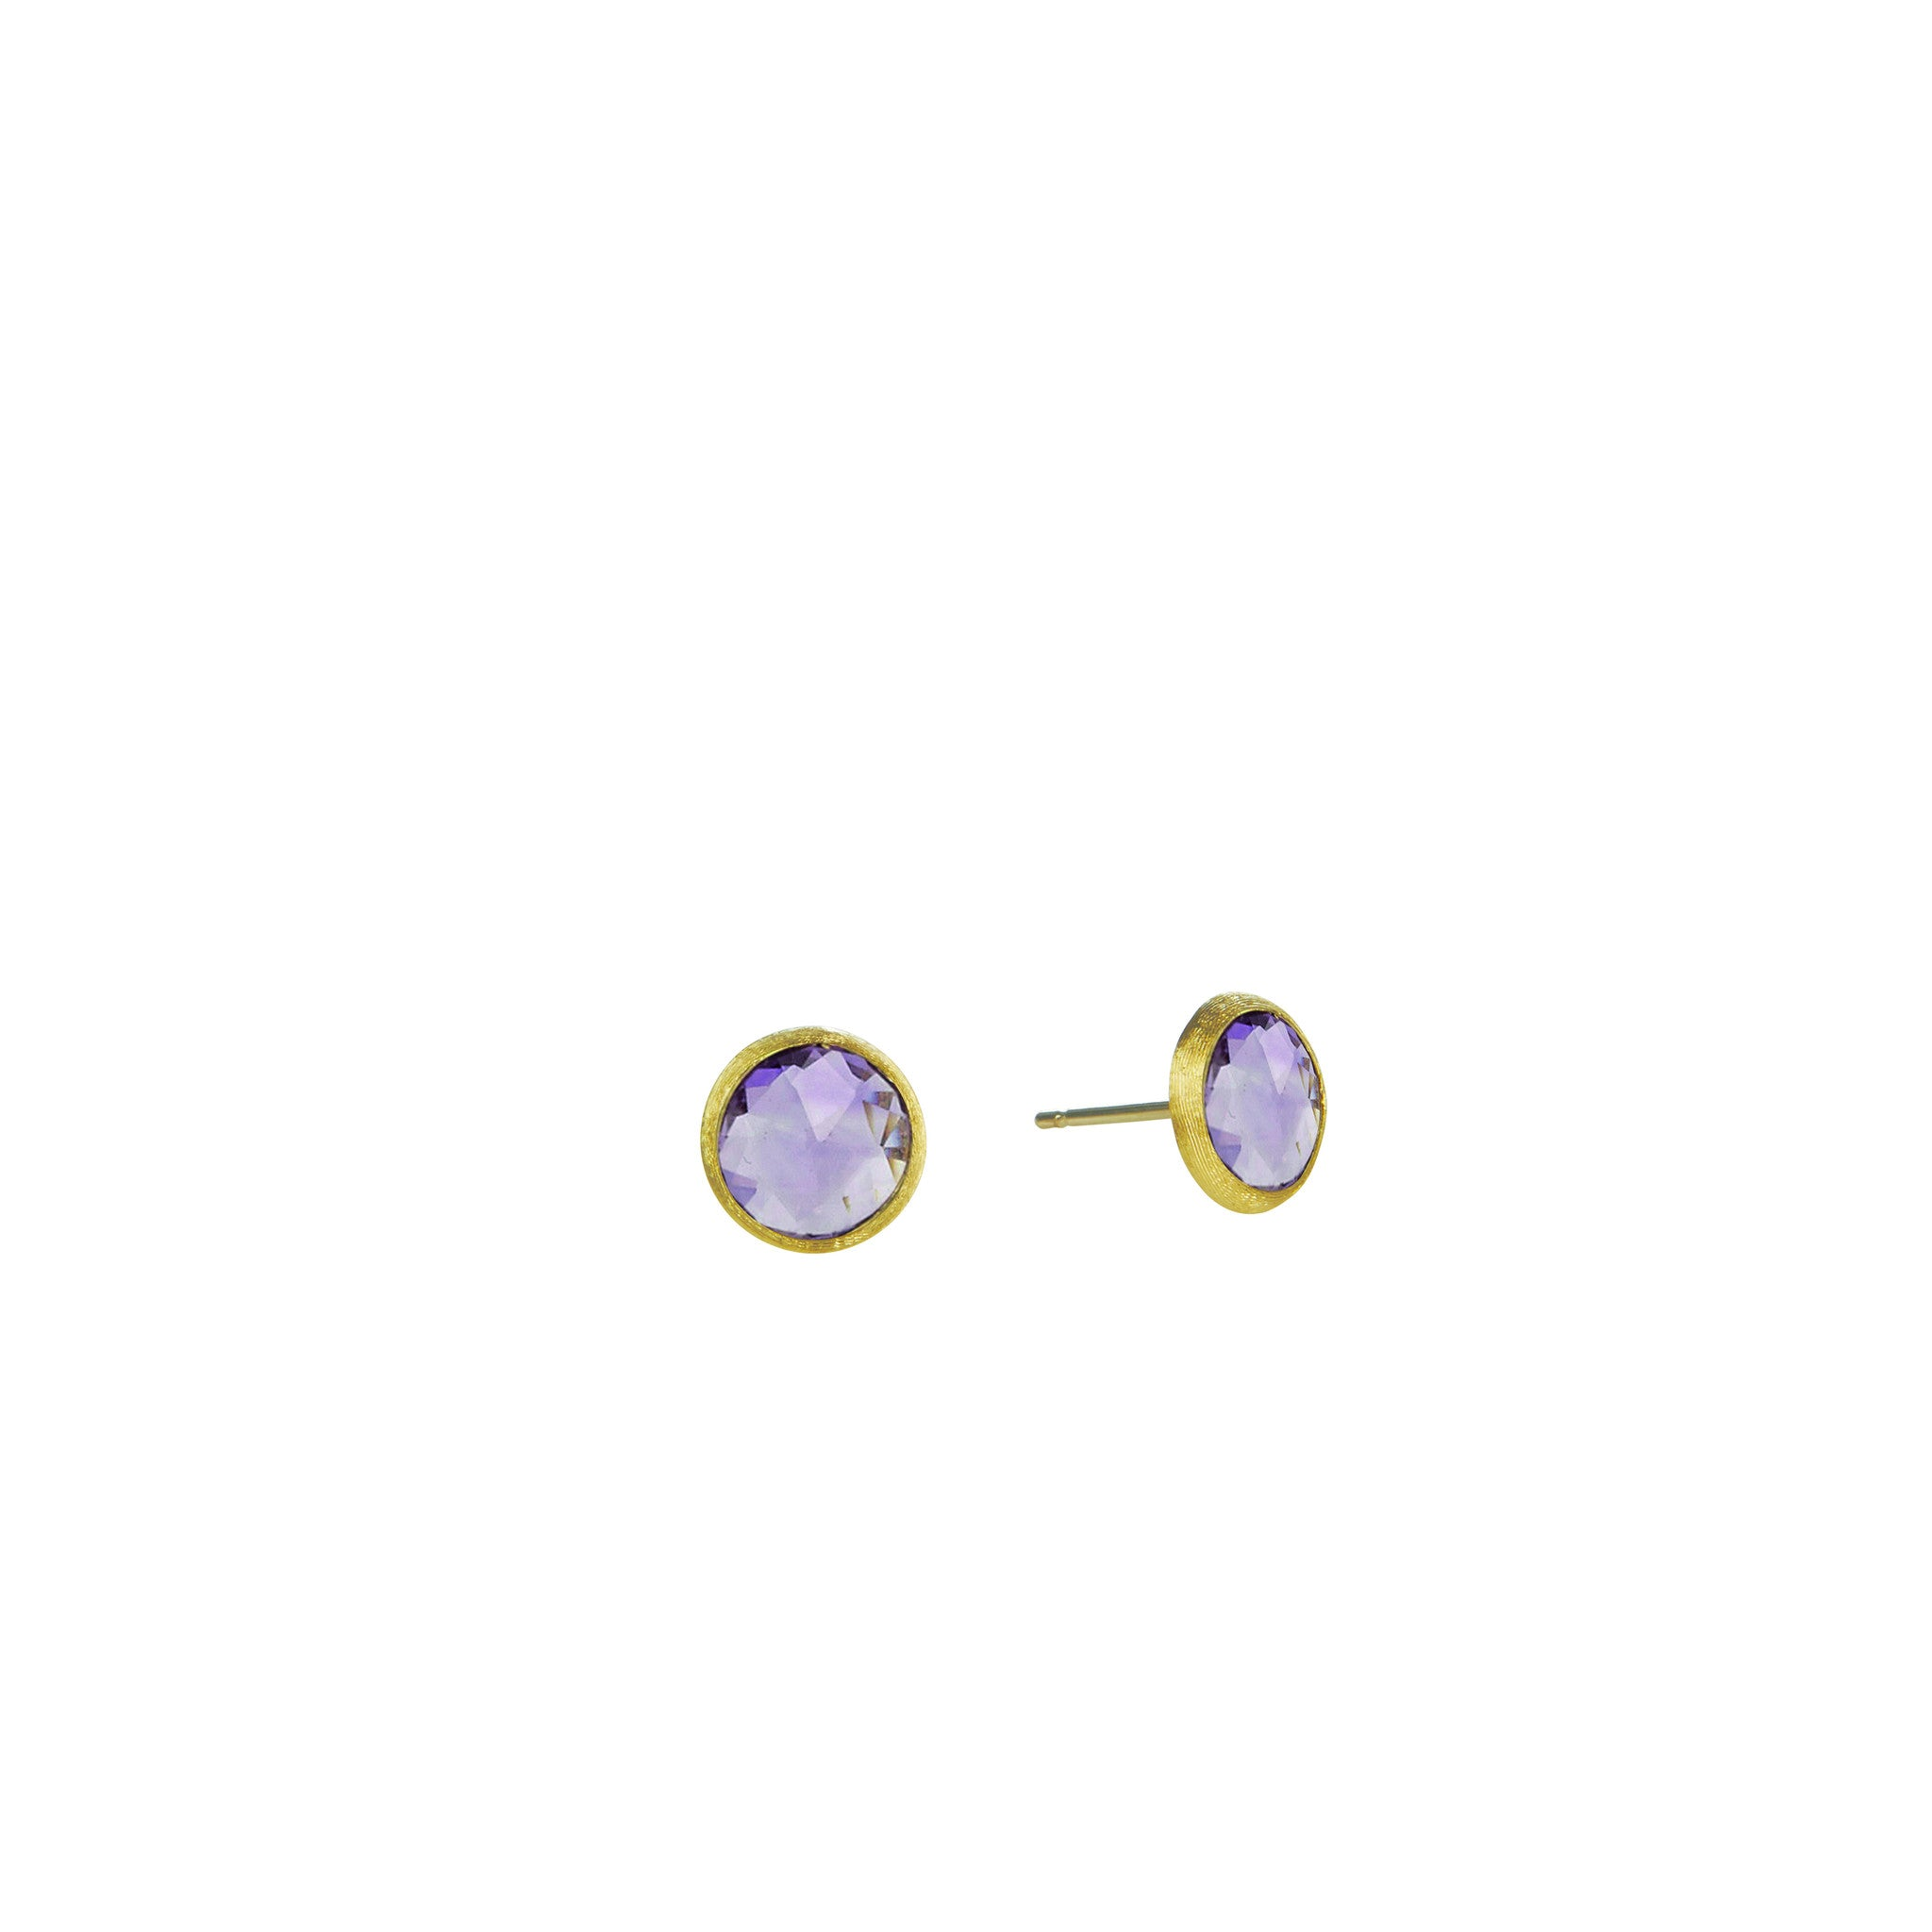 Jaipur 18K Yellow Gold & Amethyst Petite Stud Earrings